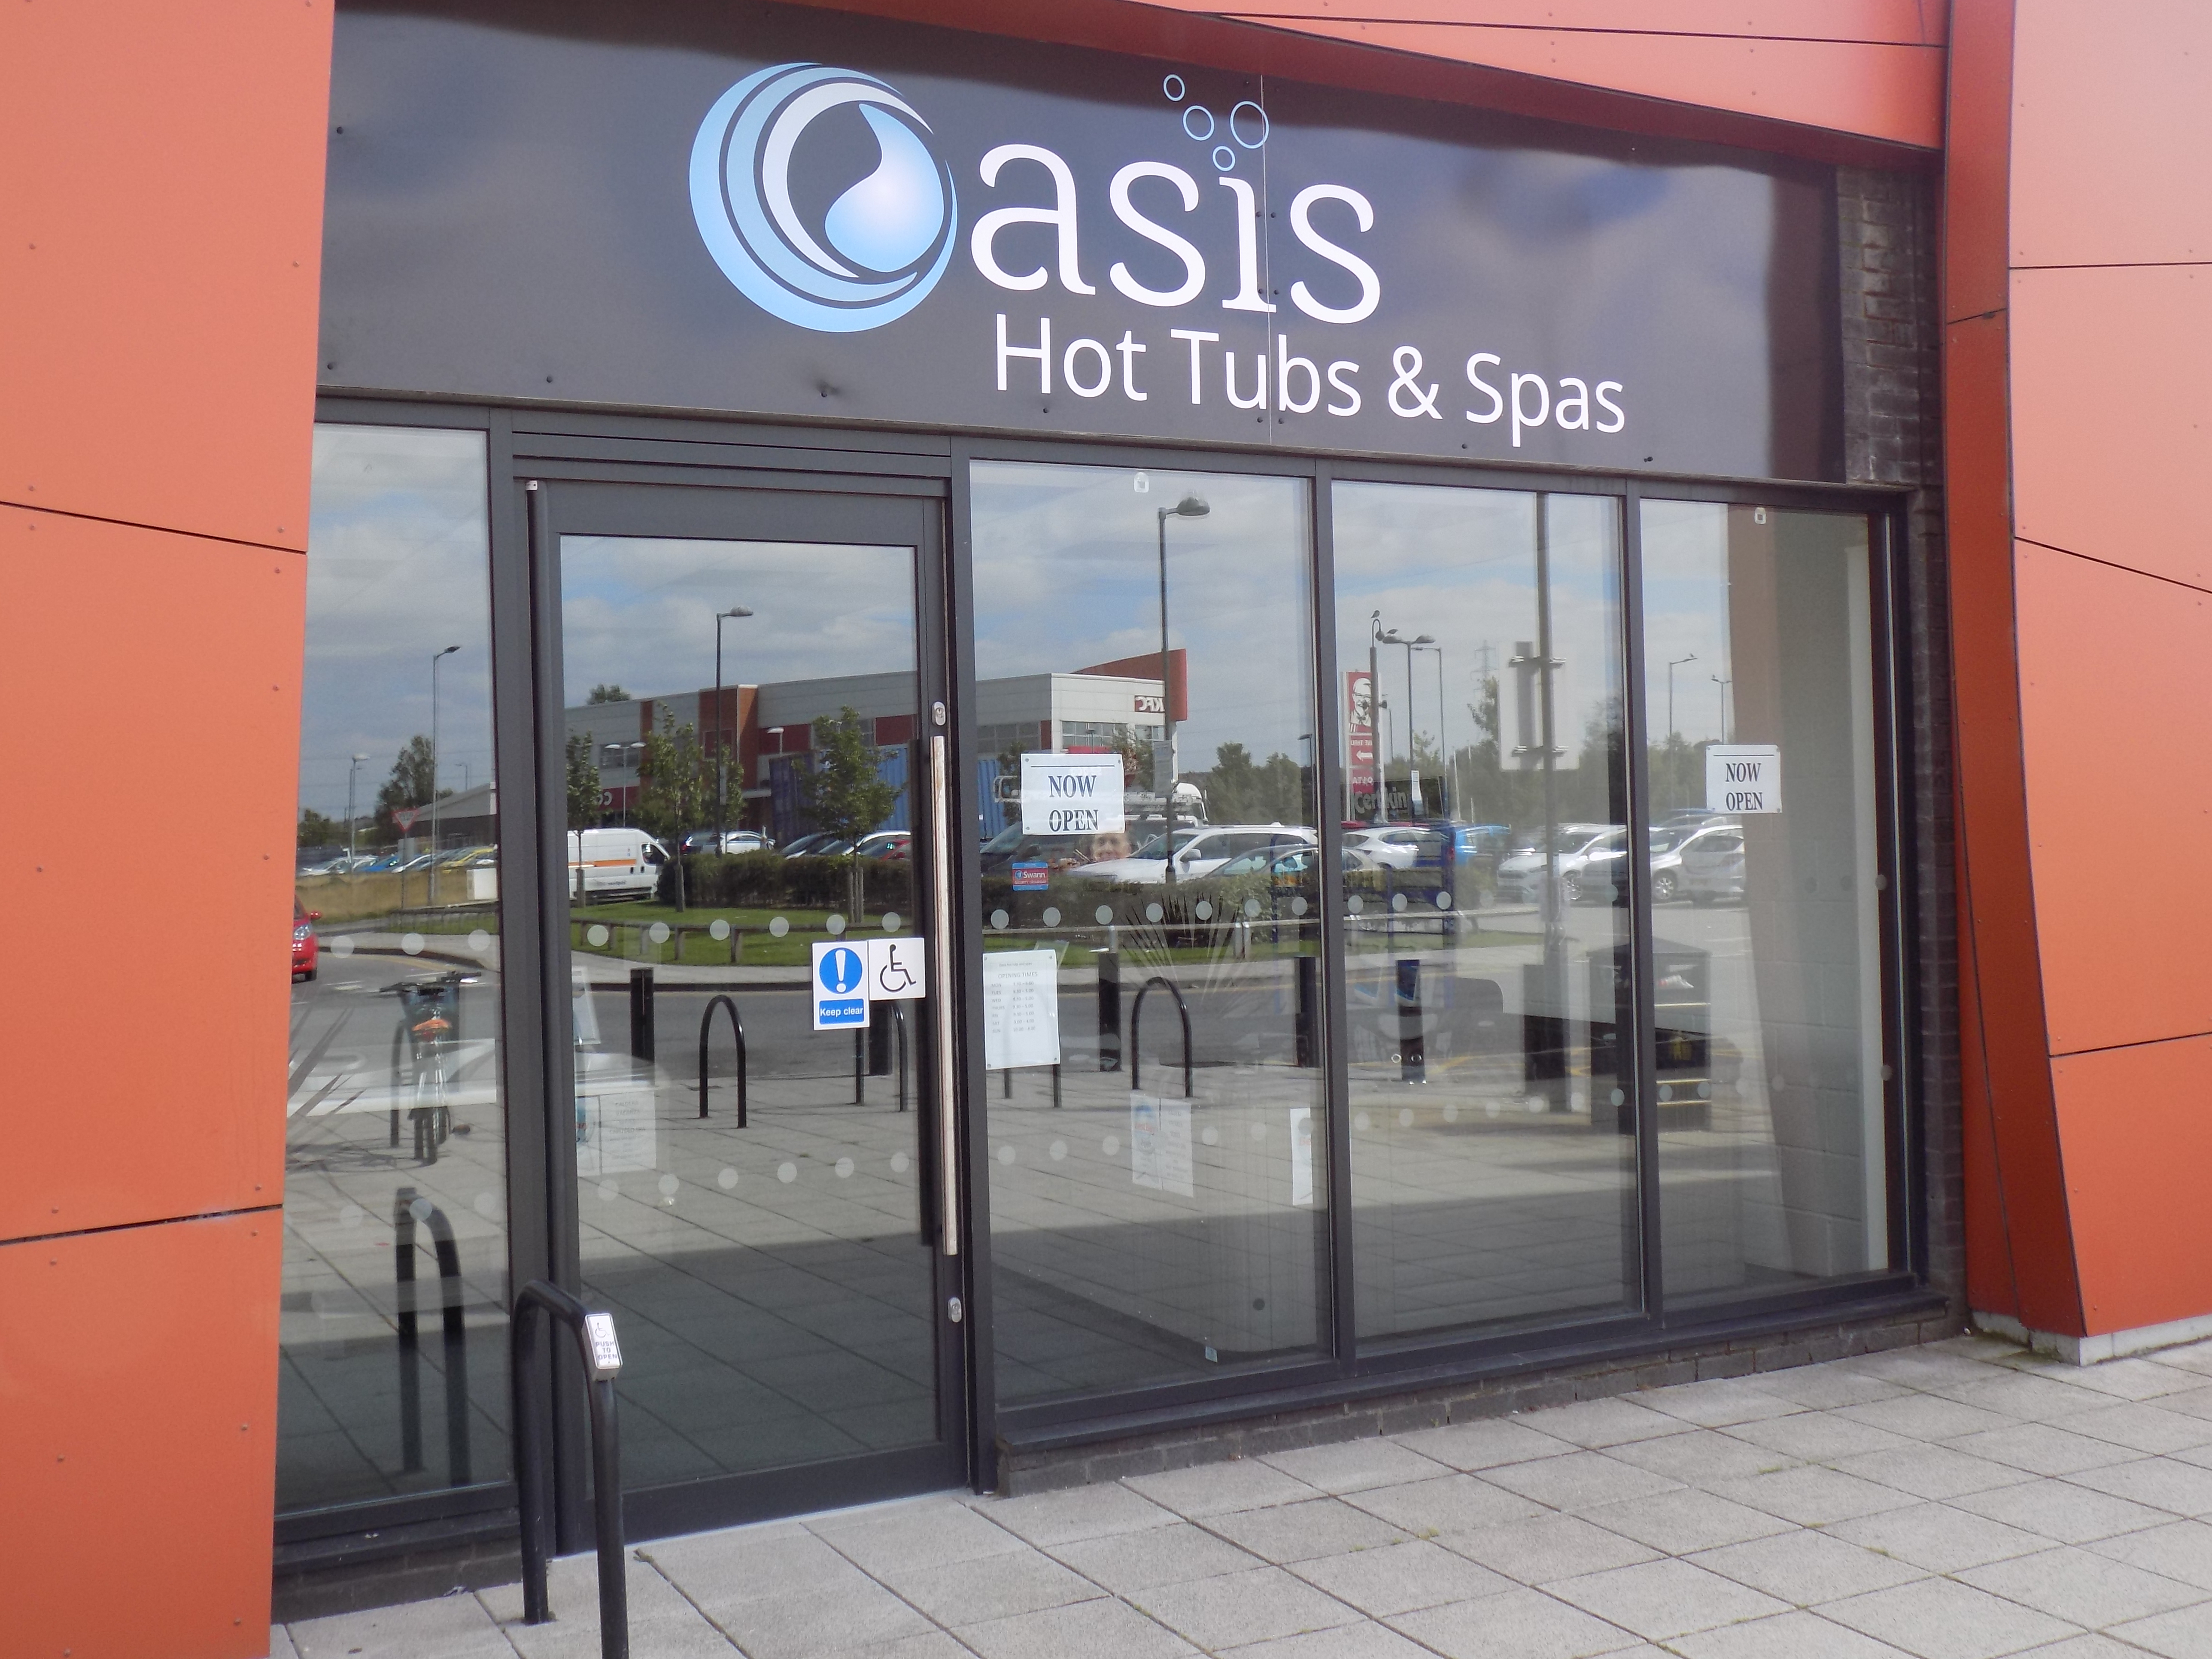 Oasis Hot Tubs & Spas Rotherham South yorkshire